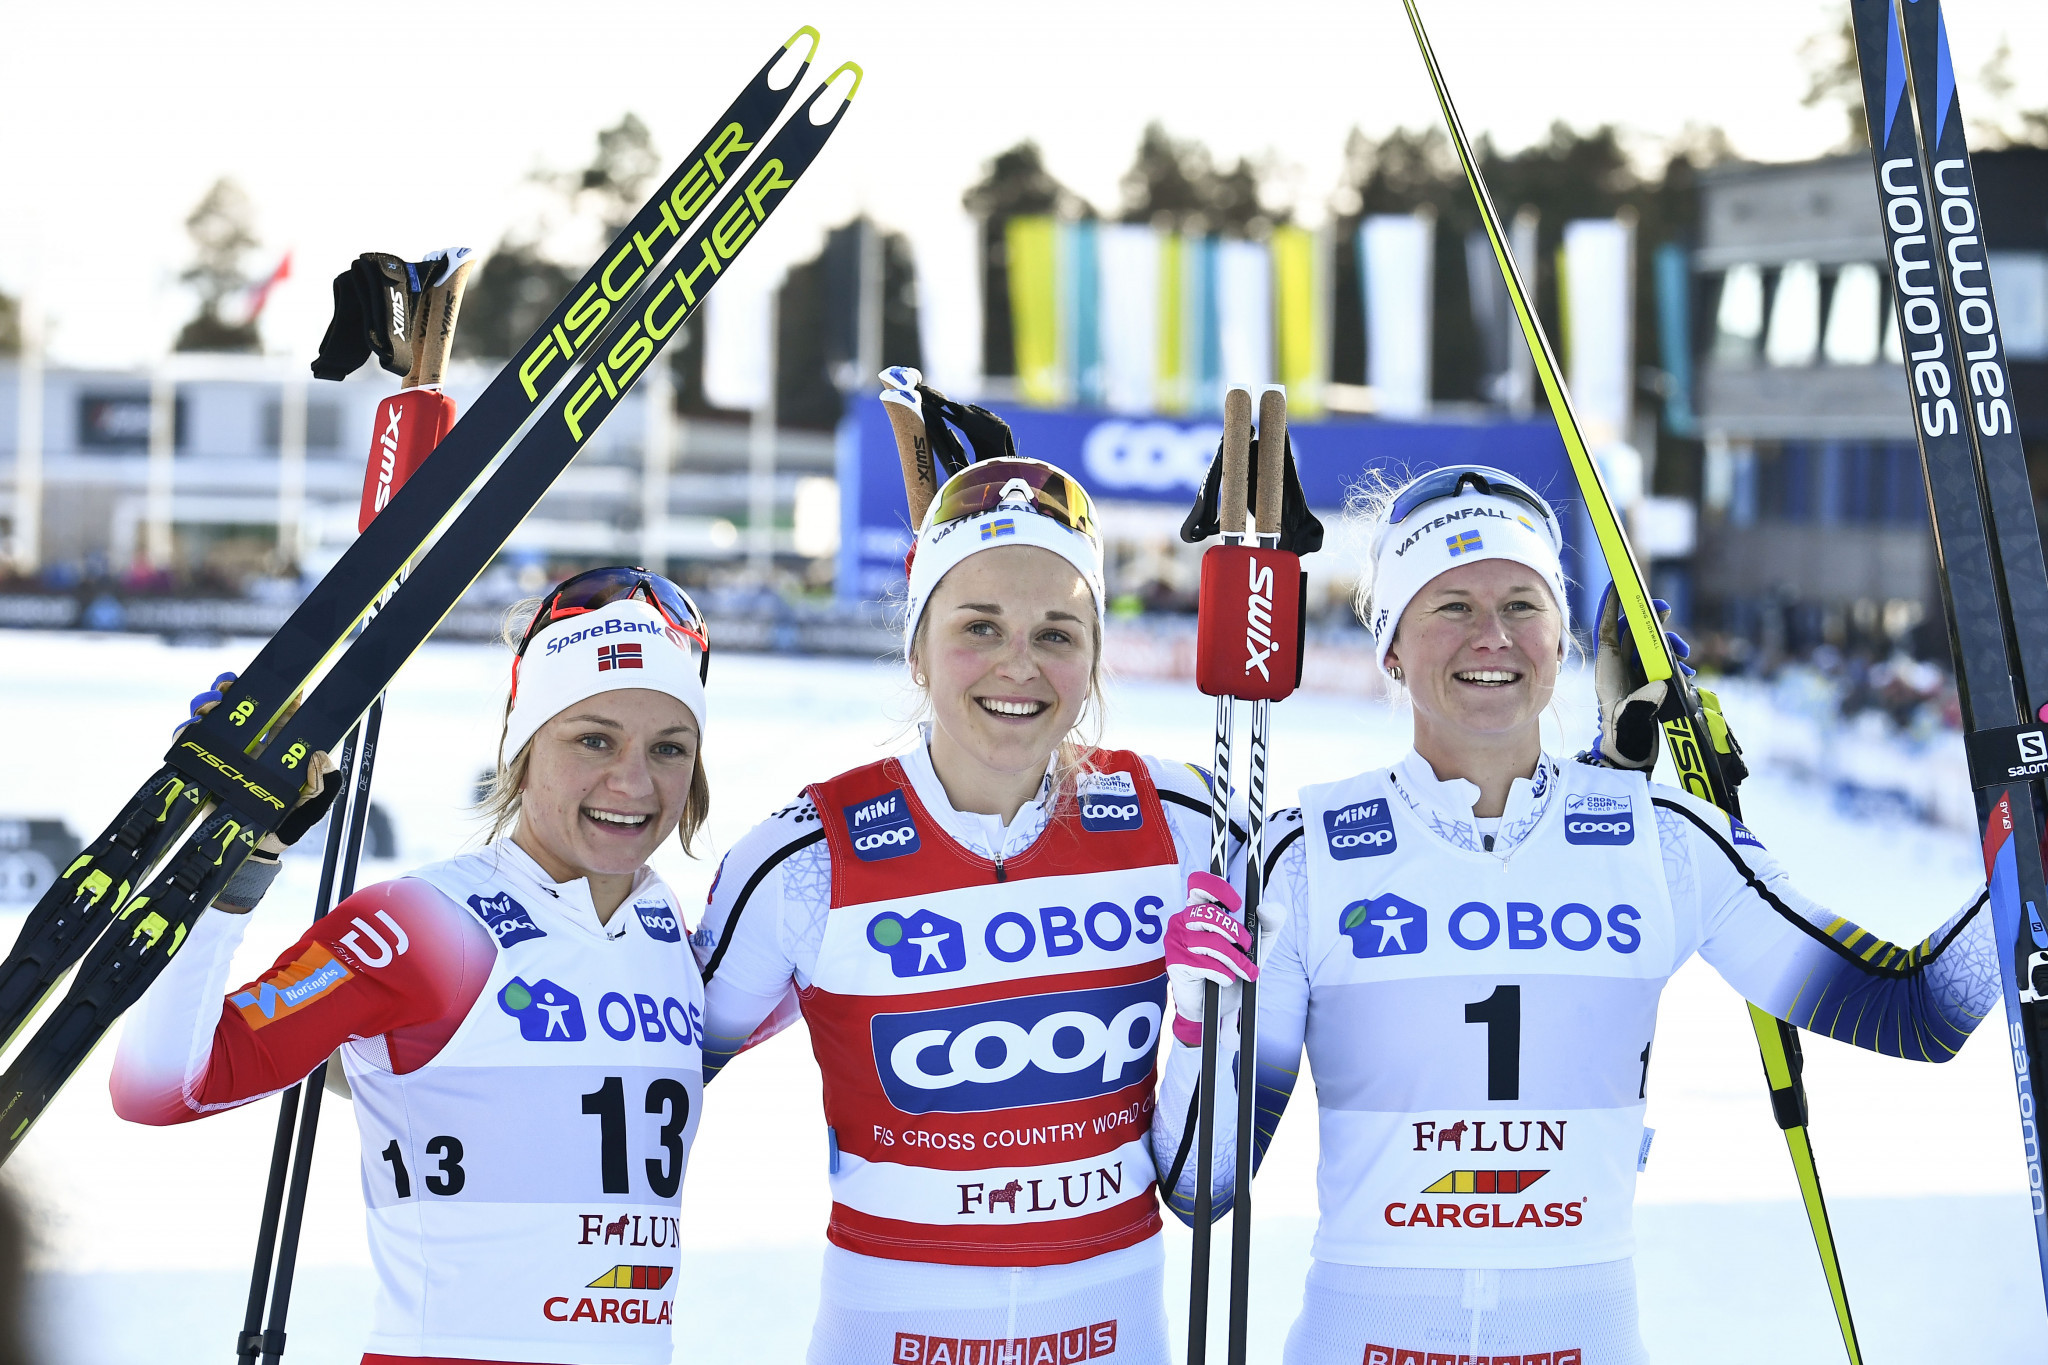 Olympic champion Nilsson extends lead in FIS Cross-Country sprint World Cup standings